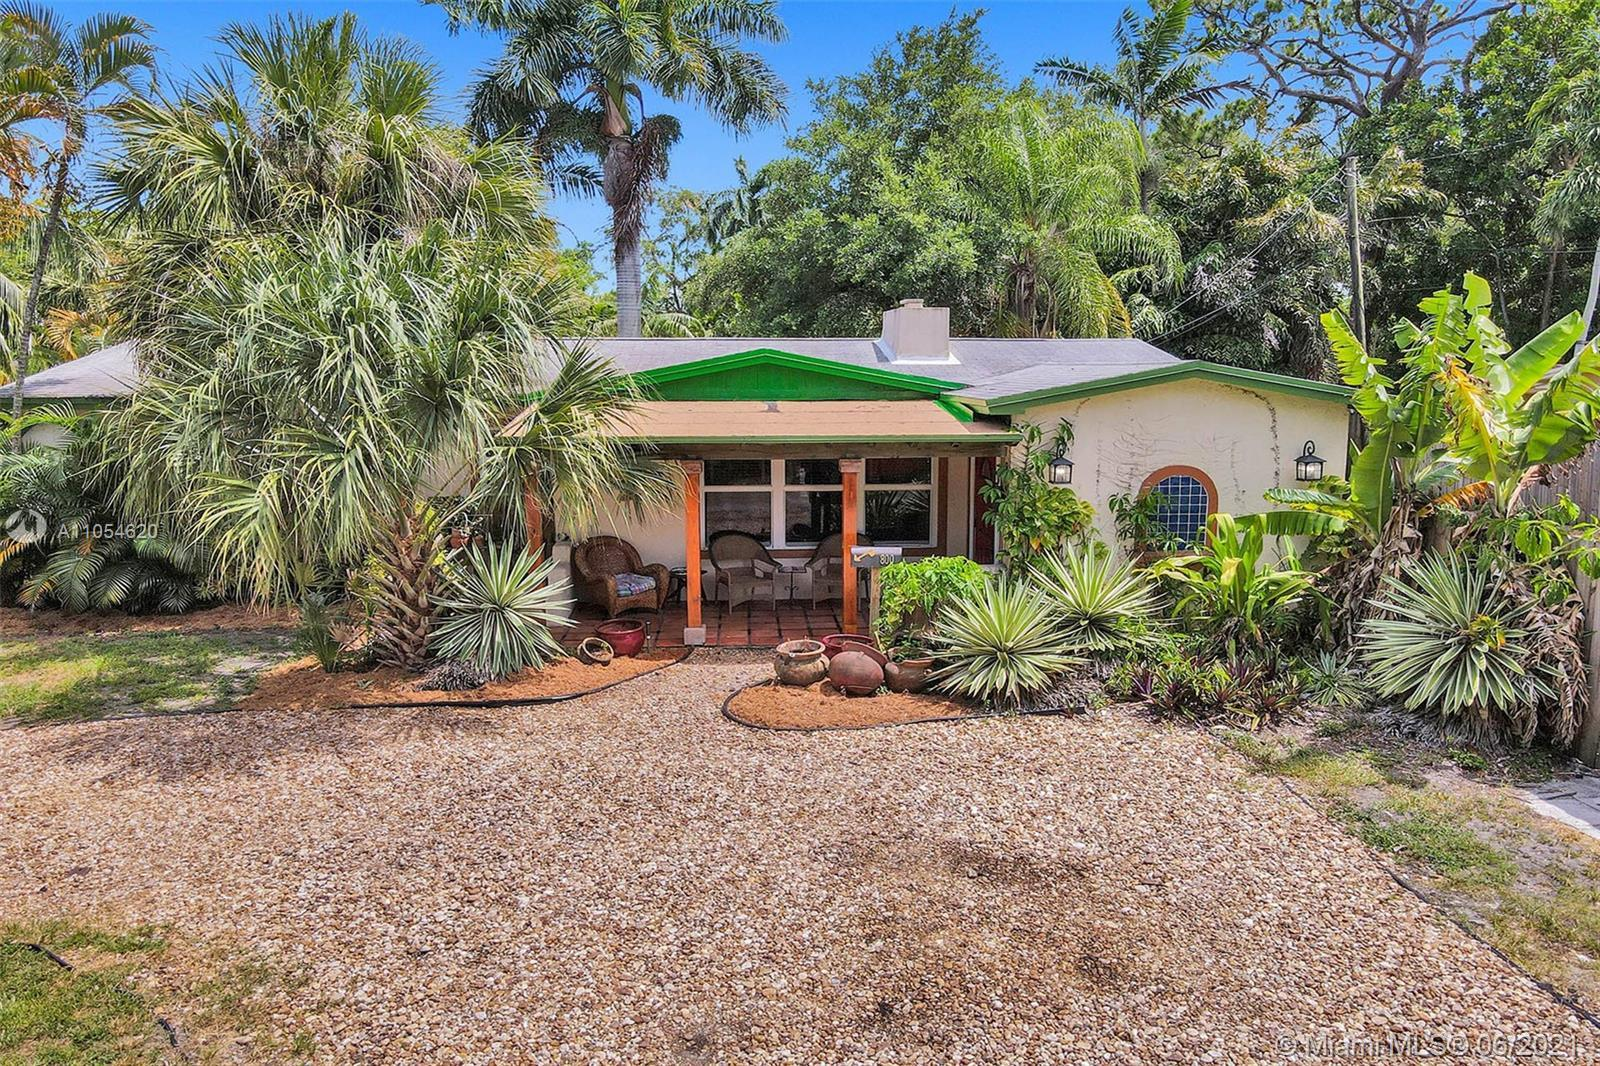 Opportunity to purchase in one of Ft. Lauderdale's most charming neighborhoods, Sailboat Bend! Situa